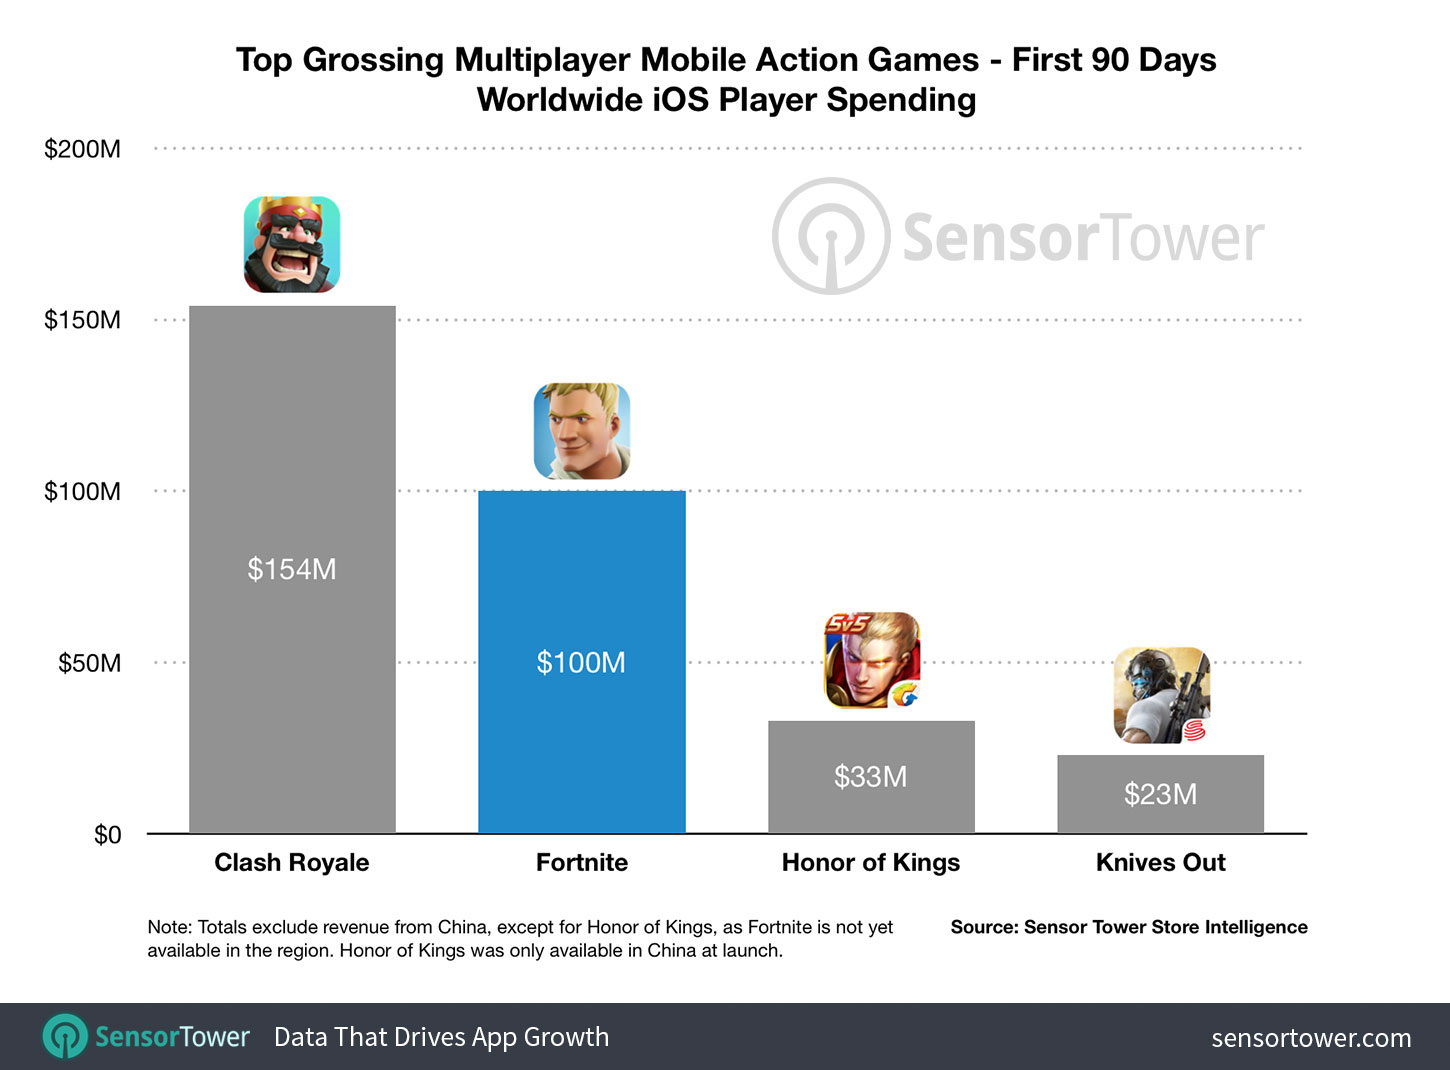 Chart showing Fortnite's gross revenue on iOS in its first 90 days compared to other top grossing mobile multiplayer games